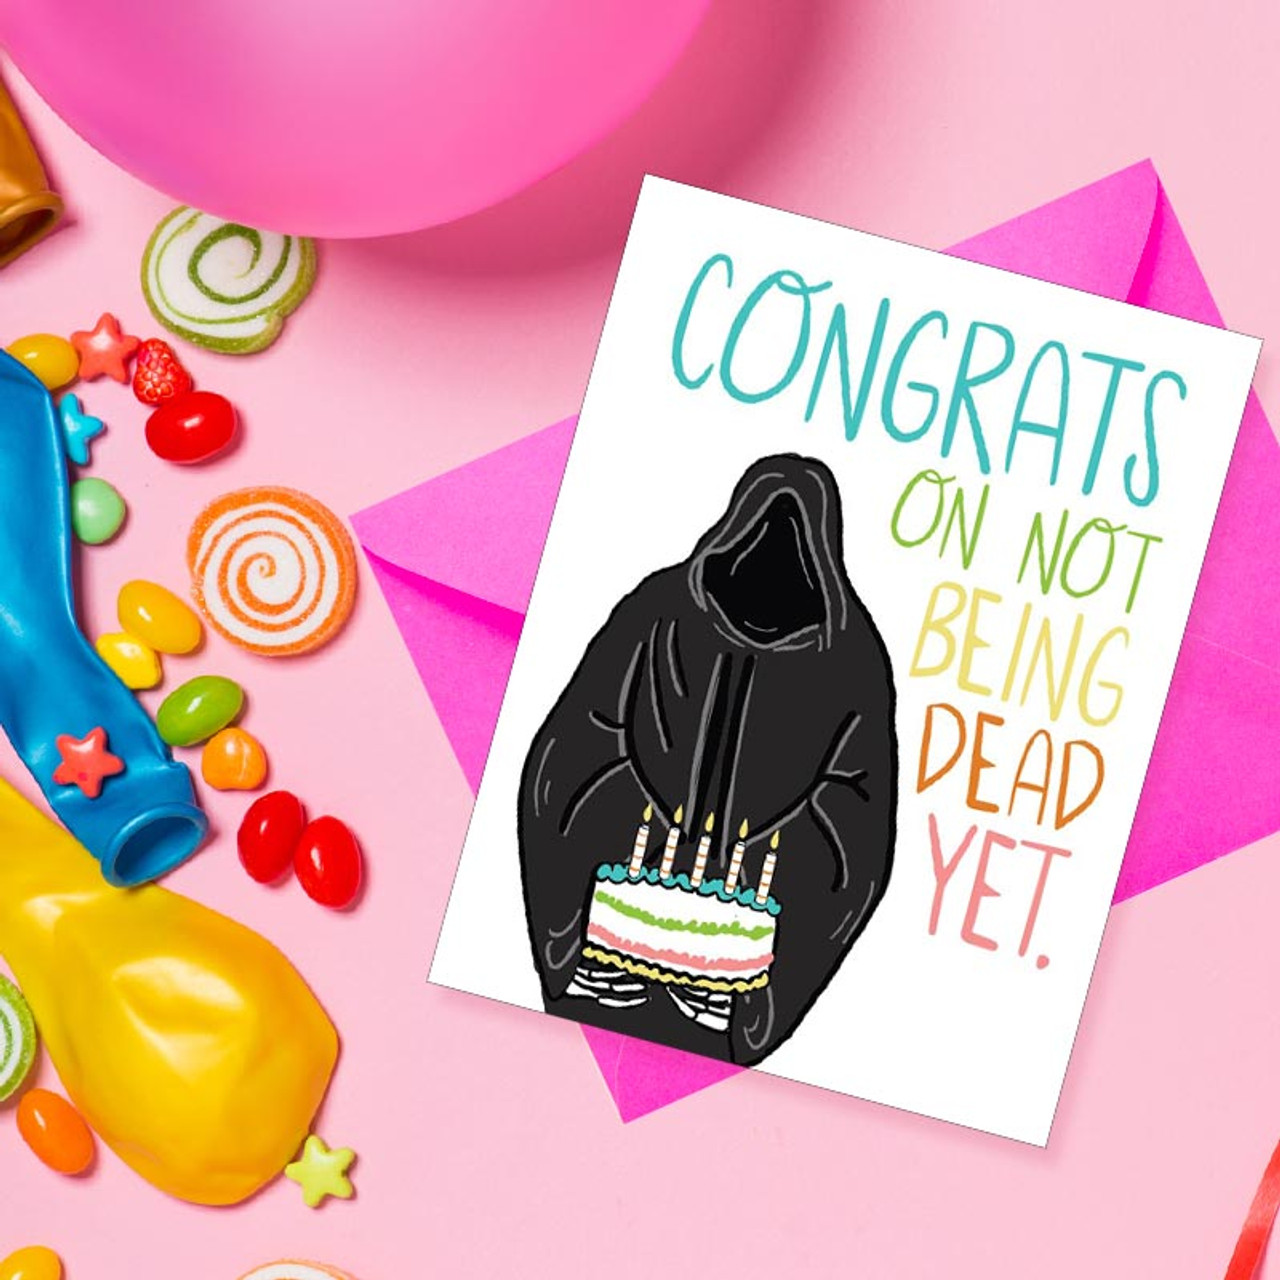 Congrats On Not Being Dead Yet Birthday Card